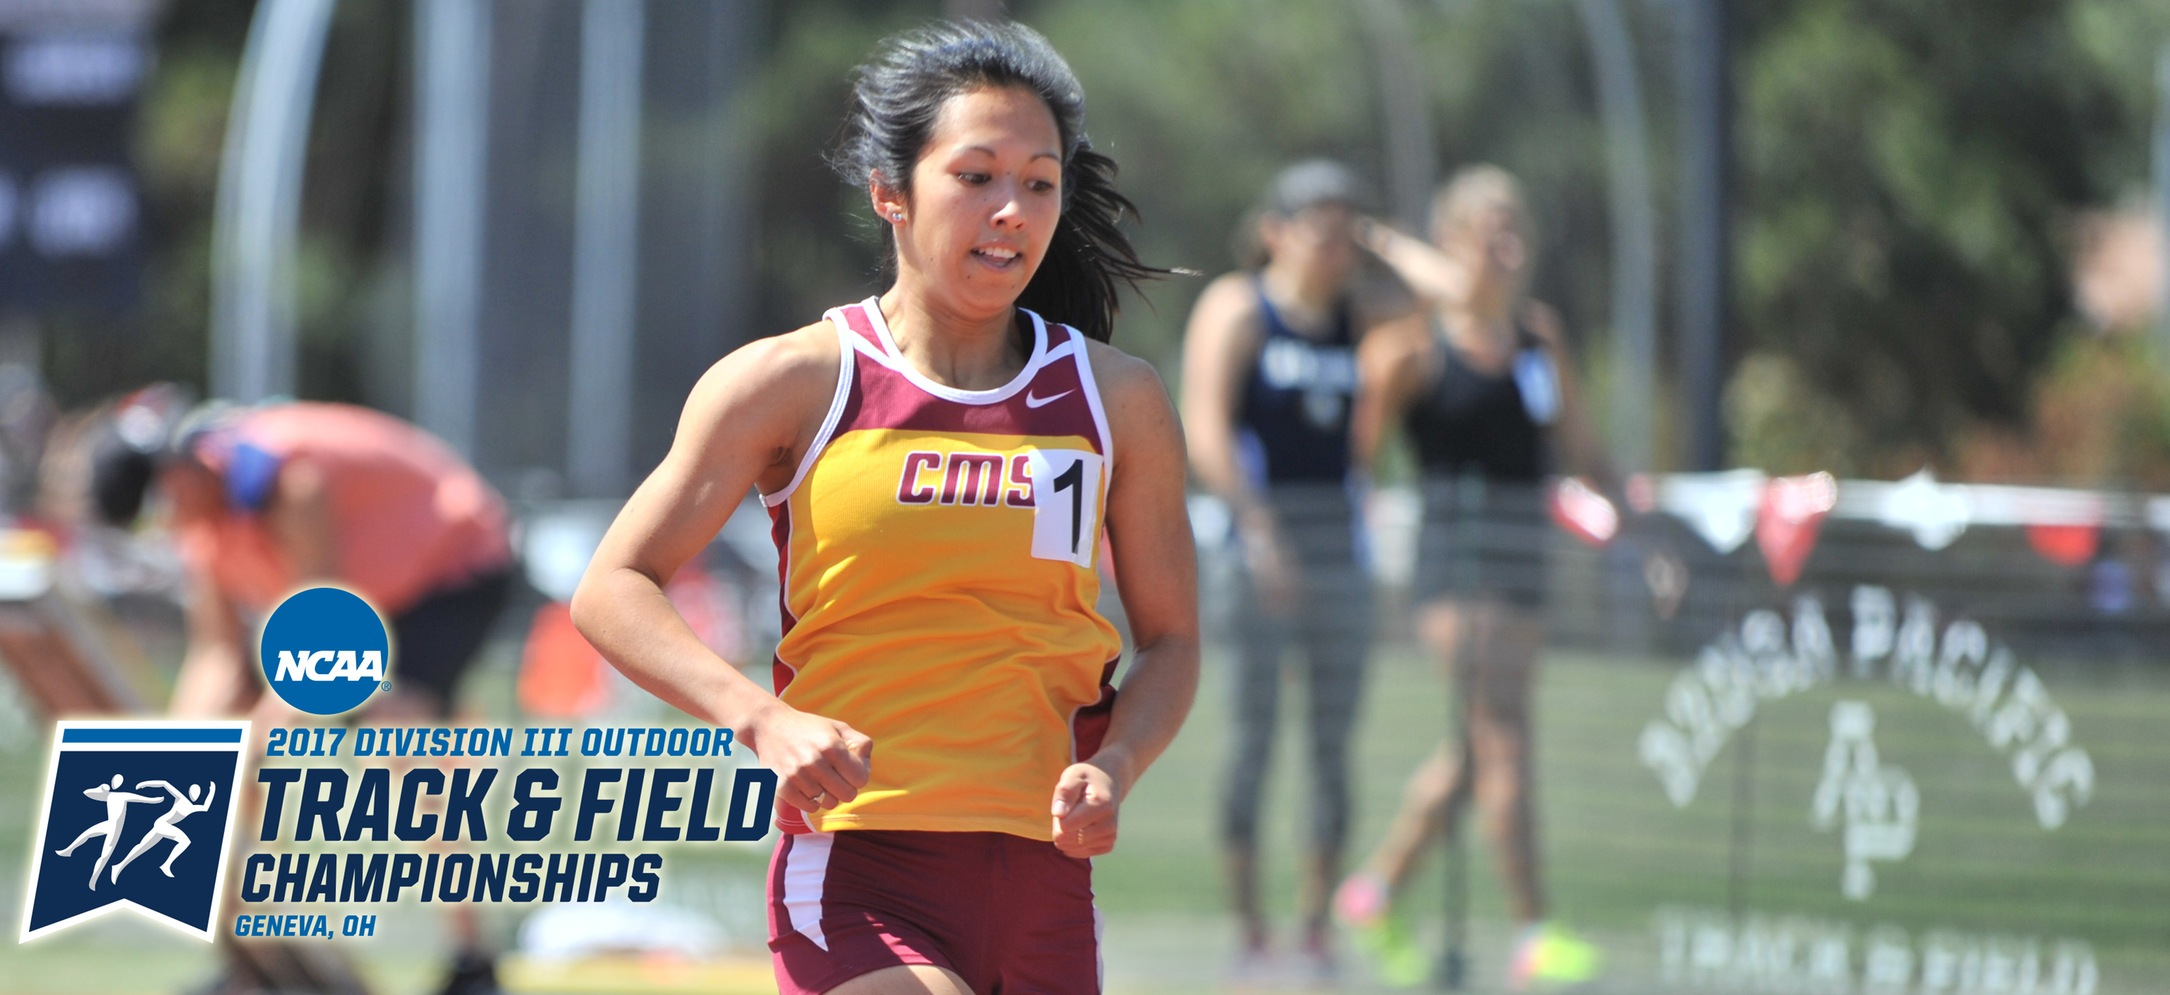 CMS sends 10 athletes to NCAA Track & Field Championship